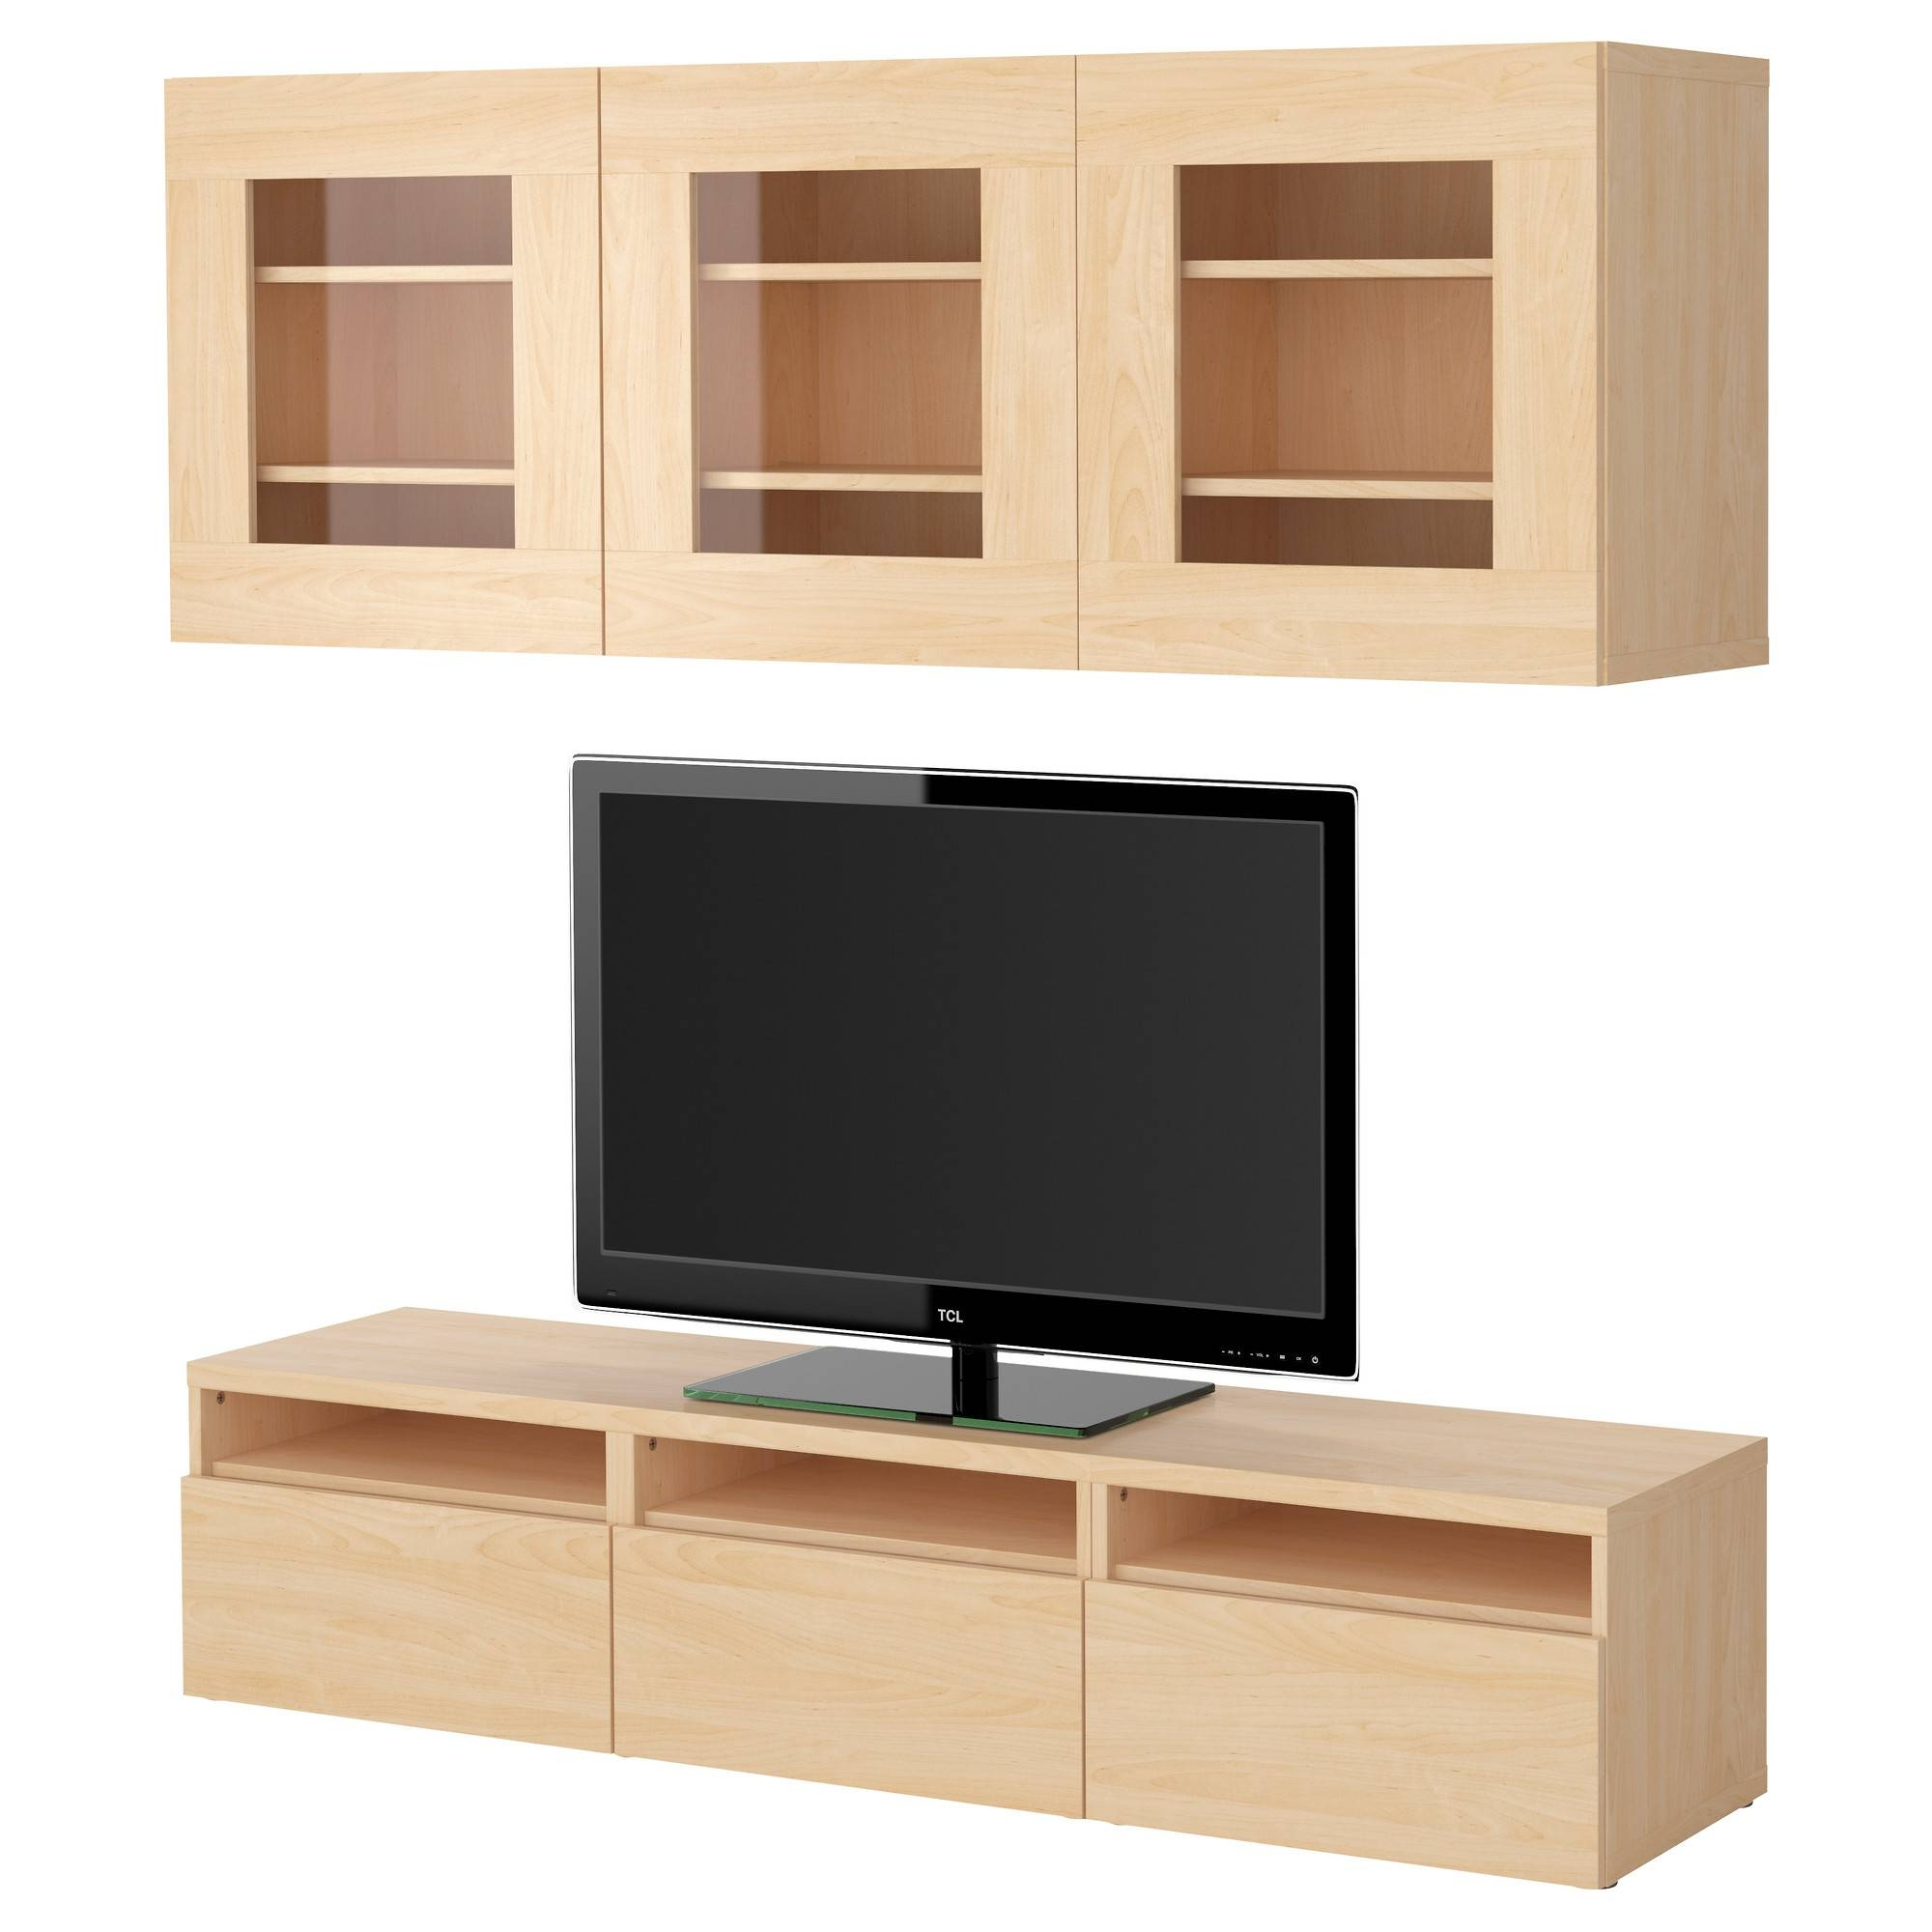 Online Room Planner Ikea With Minimalist Tv Stands Or Tv Cabinets With Birch Tv Stands (View 8 of 15)